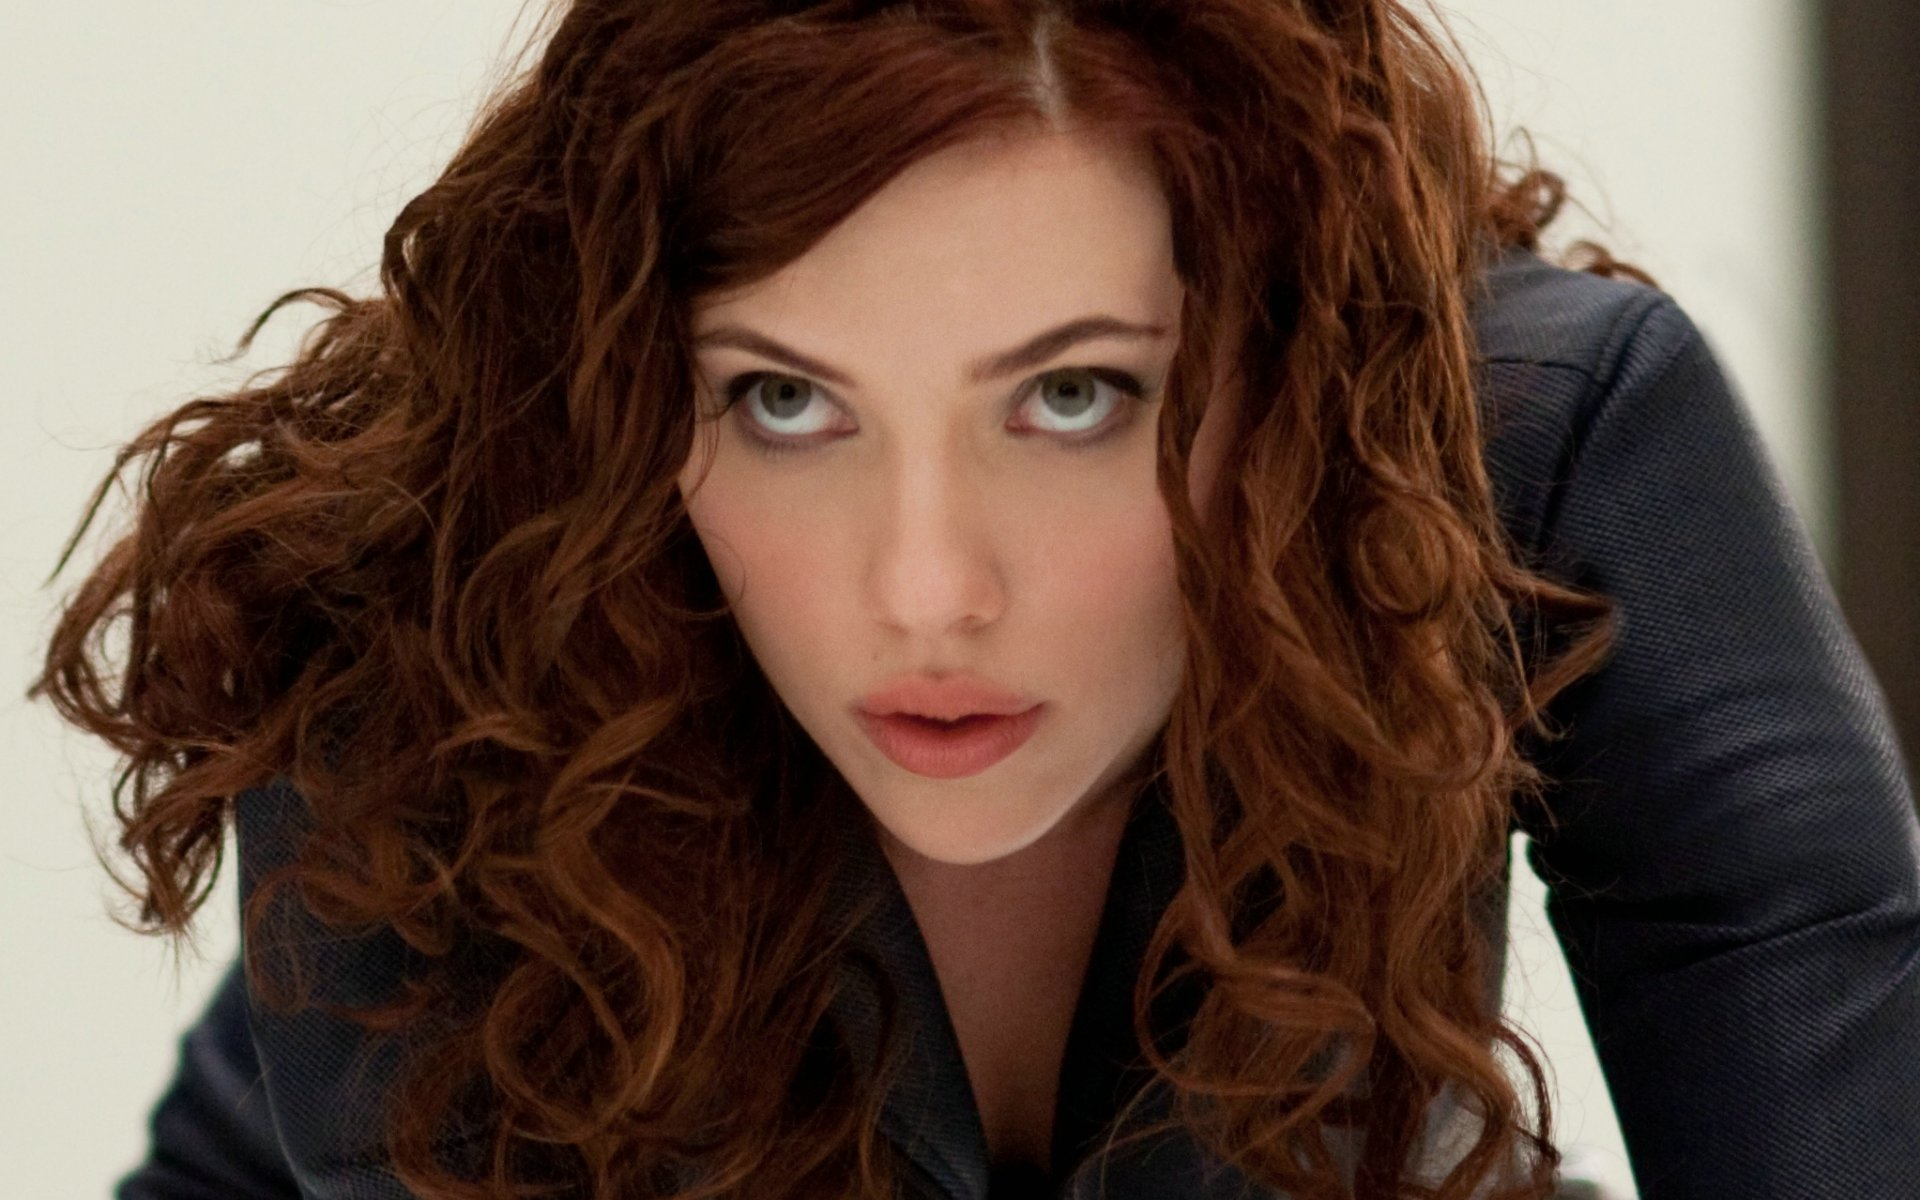 Scarlett Johansson Black Widow (Iron Man 2) Widescreen Wallpaper